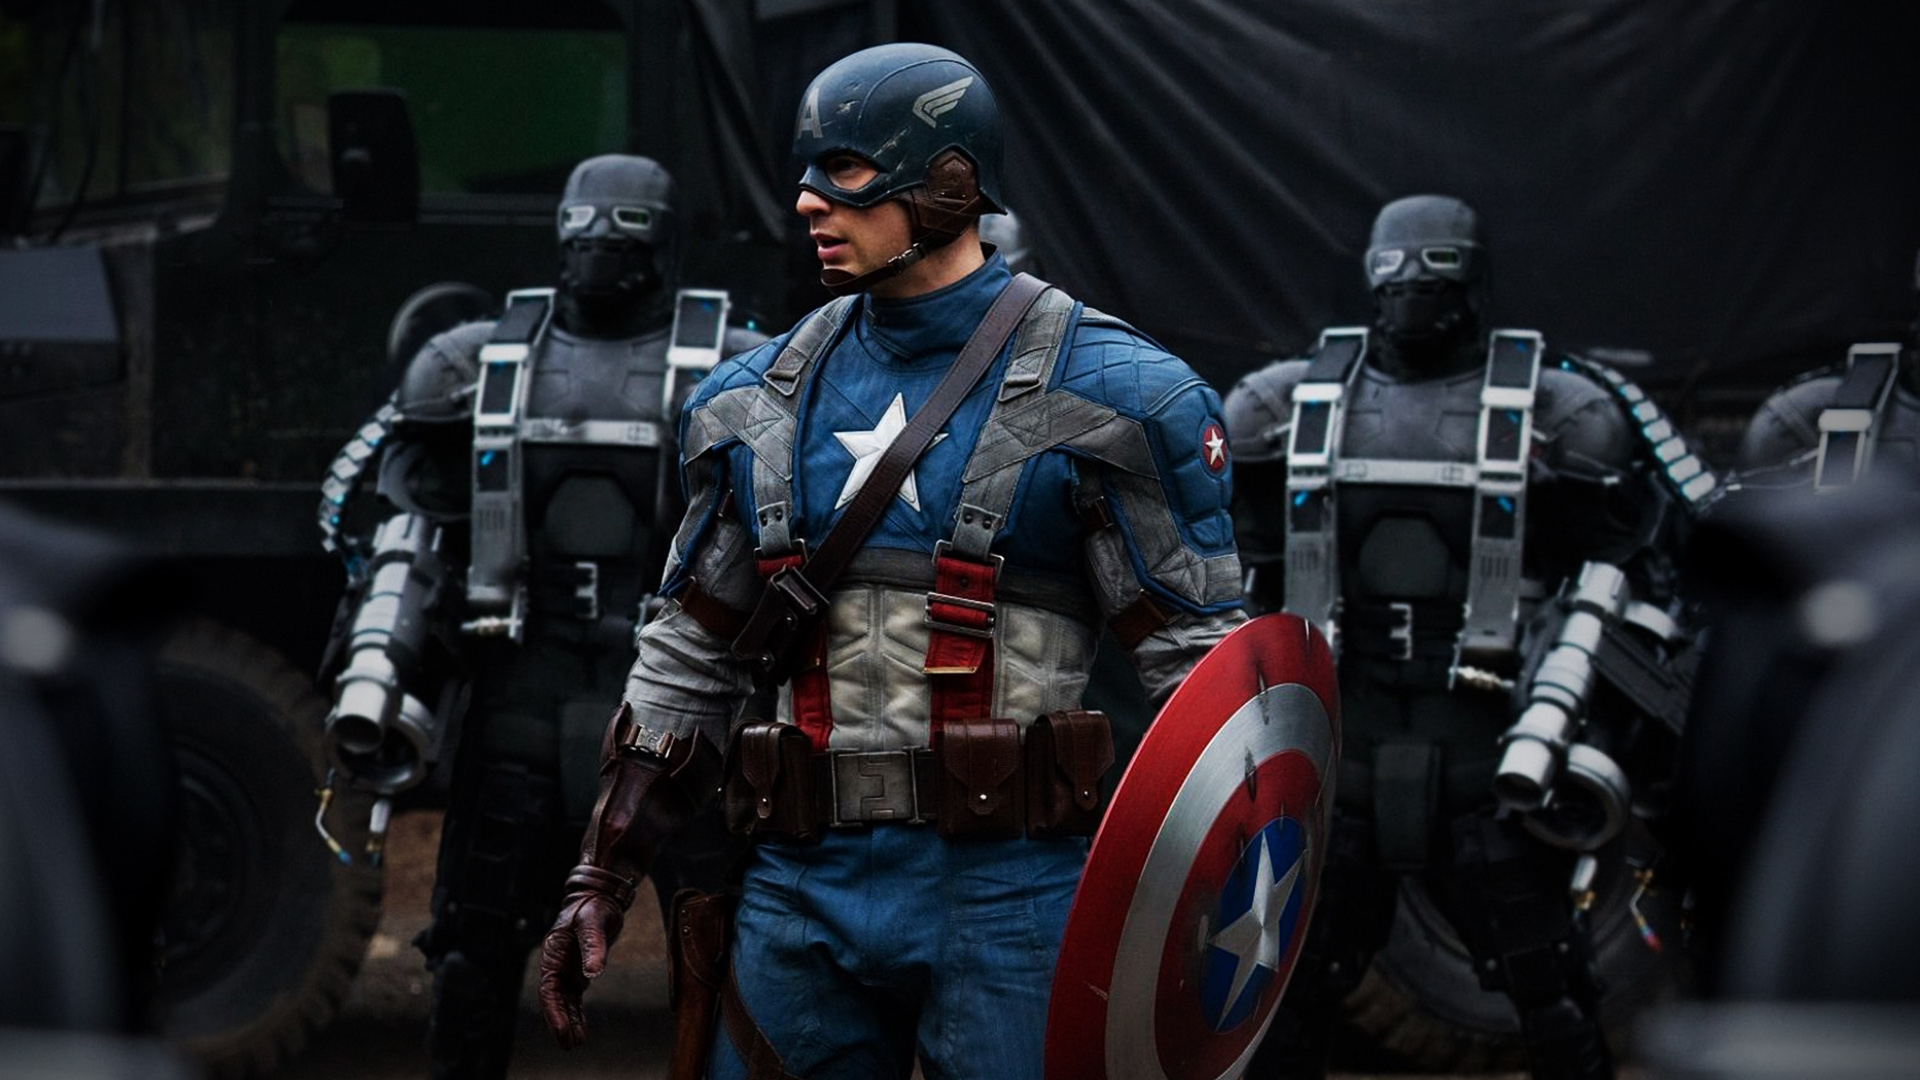 captain america background scenic wallpaper wallpapers 1920x1080 1920x1080